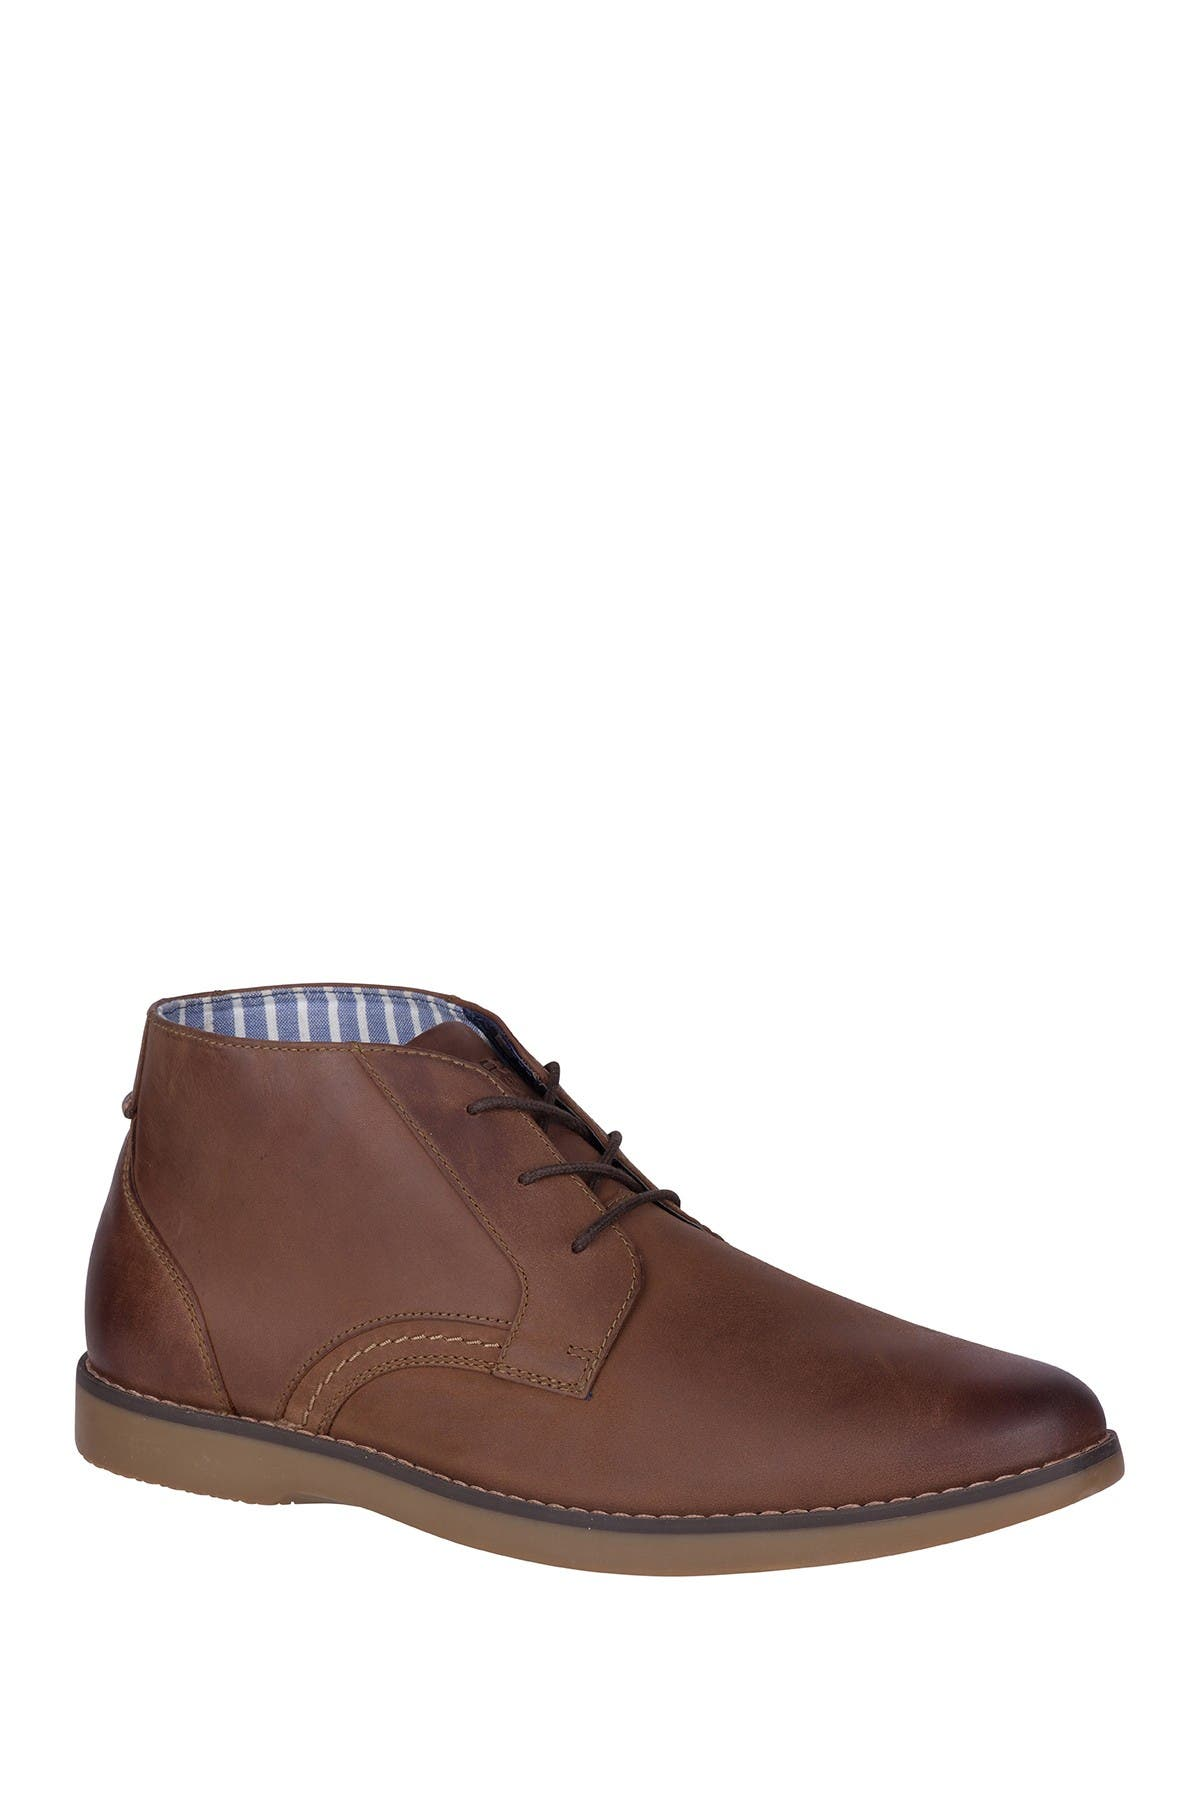 Image of Sperry Newman Leather Chukka Boot